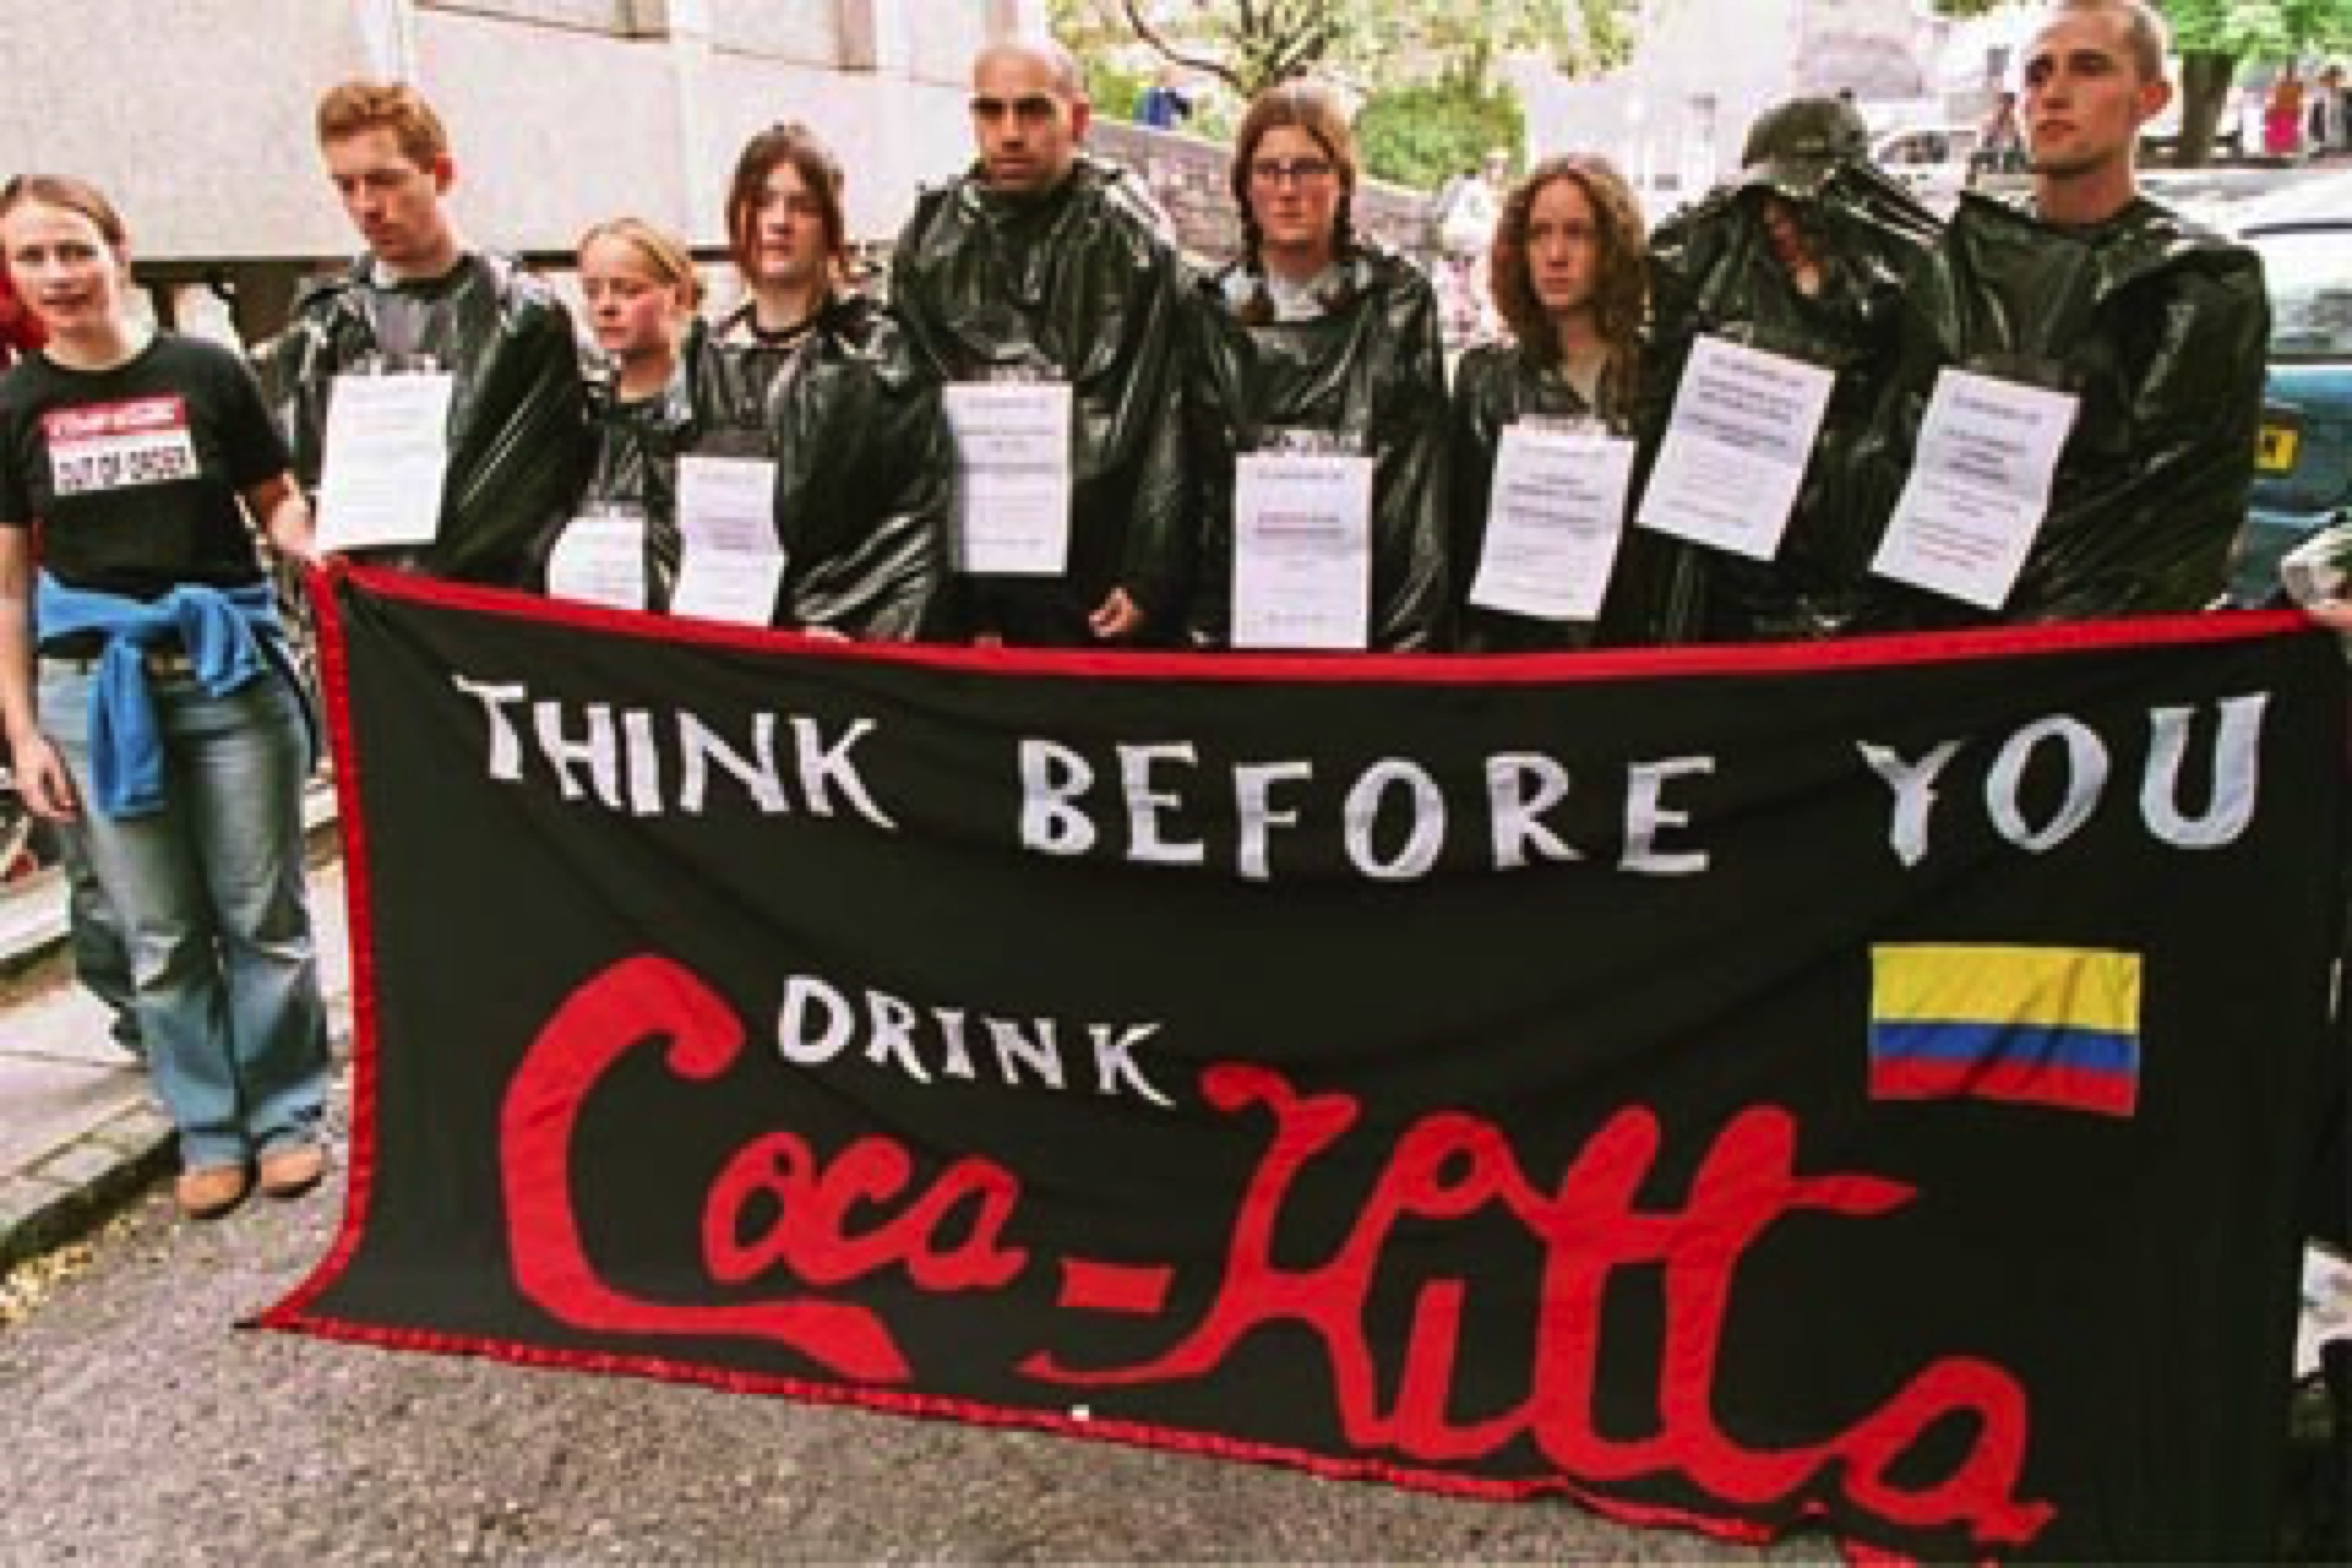 killer coke Read campaign to stop killer coke, north american dialogue on deepdyve, the largest online rental service for scholarly research with thousands of academic publications available at your fingertips.